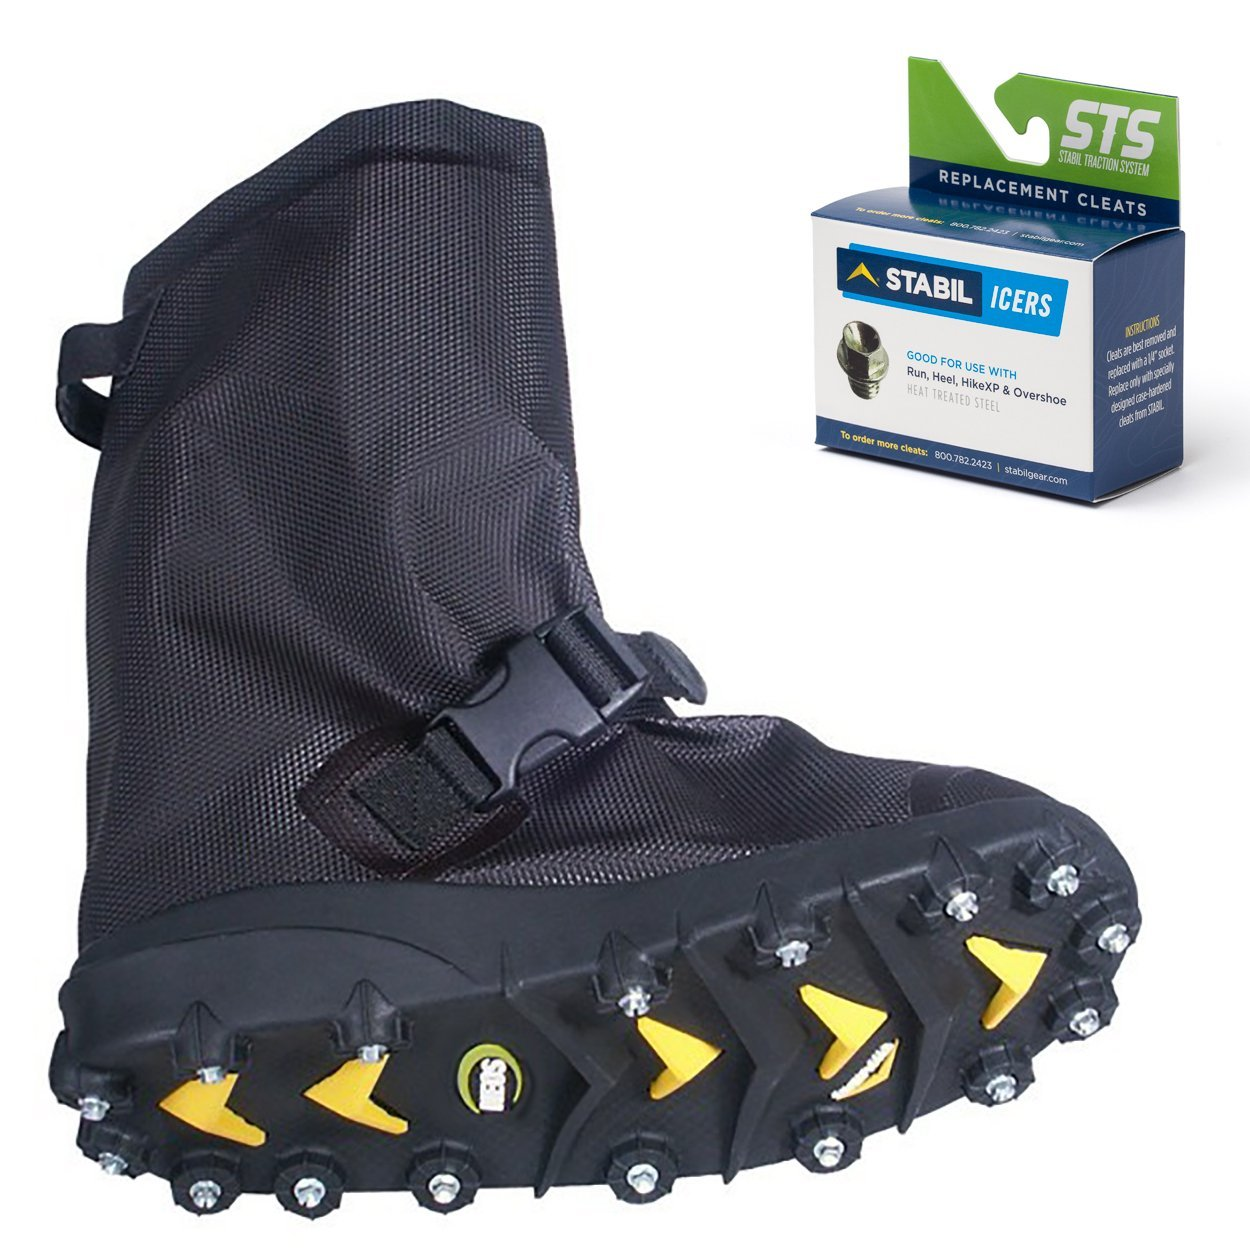 STABILicers Voyager Overshoe with Traction Cleats for Ice & Snow, Fits Over Shoes/Boots, Made in USA, 25 Replacement Cleats Included, Size XL